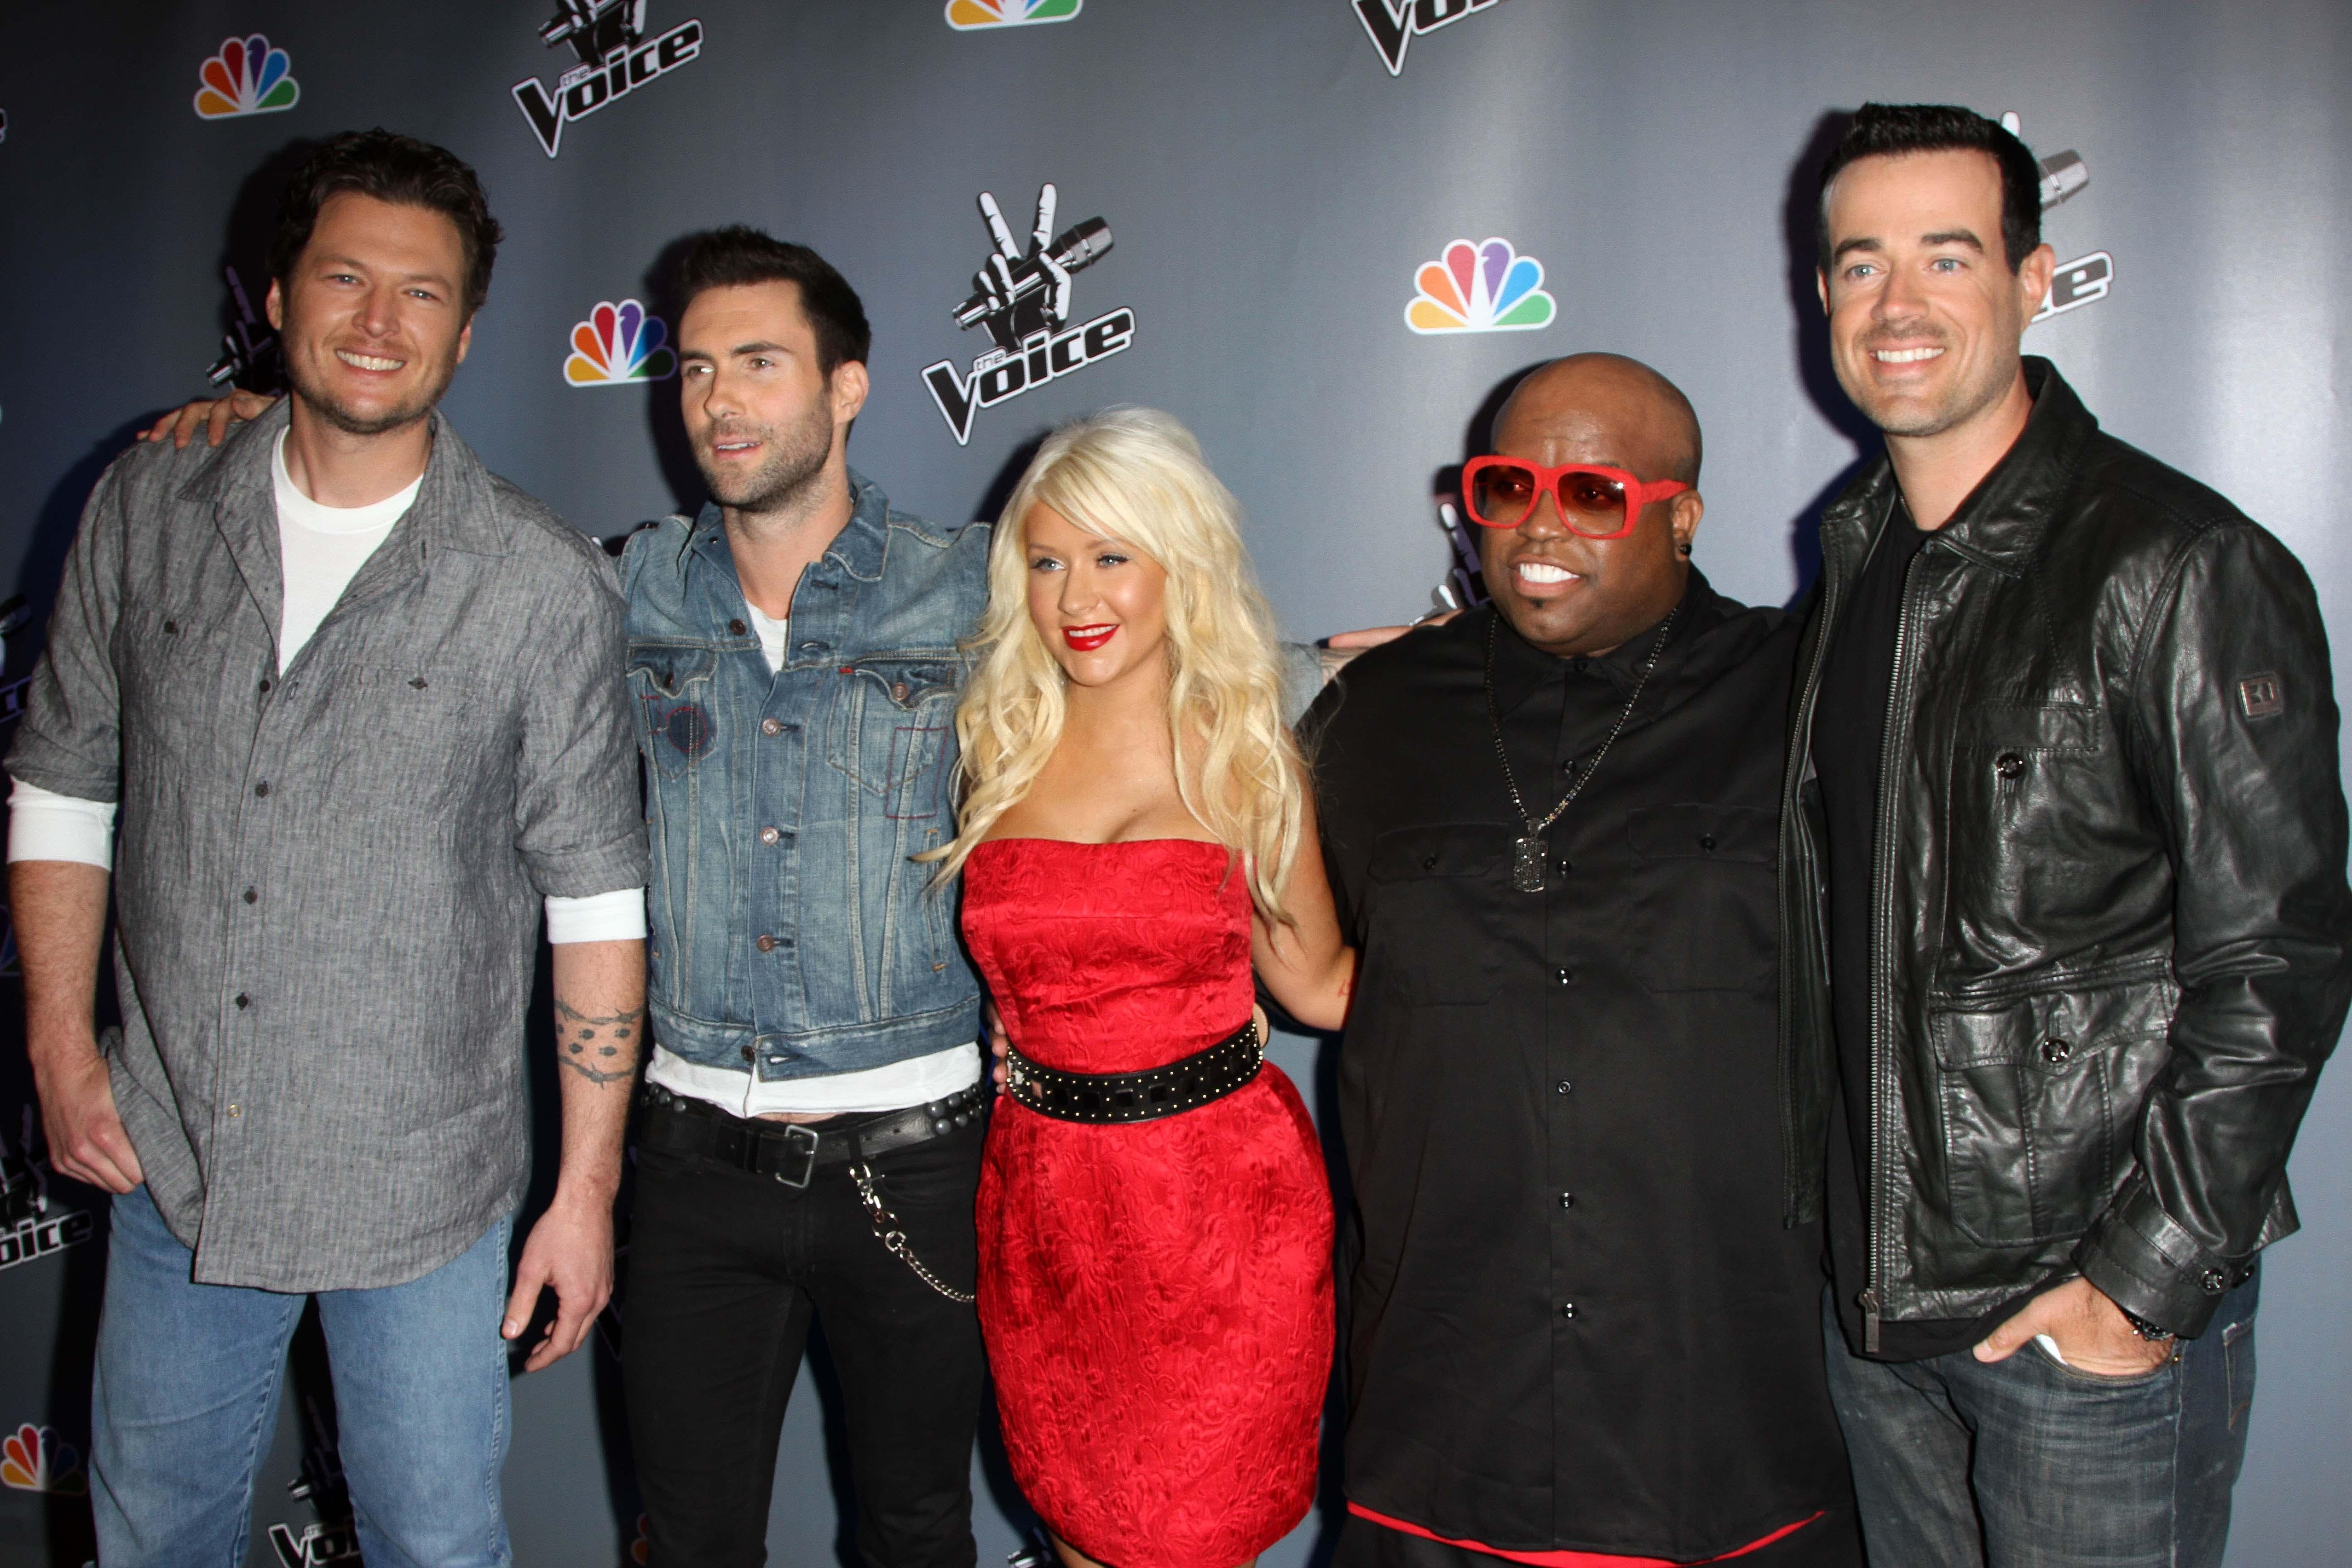 CeeLo and Shakira Are Returning To 'The Voice' For Supergroup Finale Performance